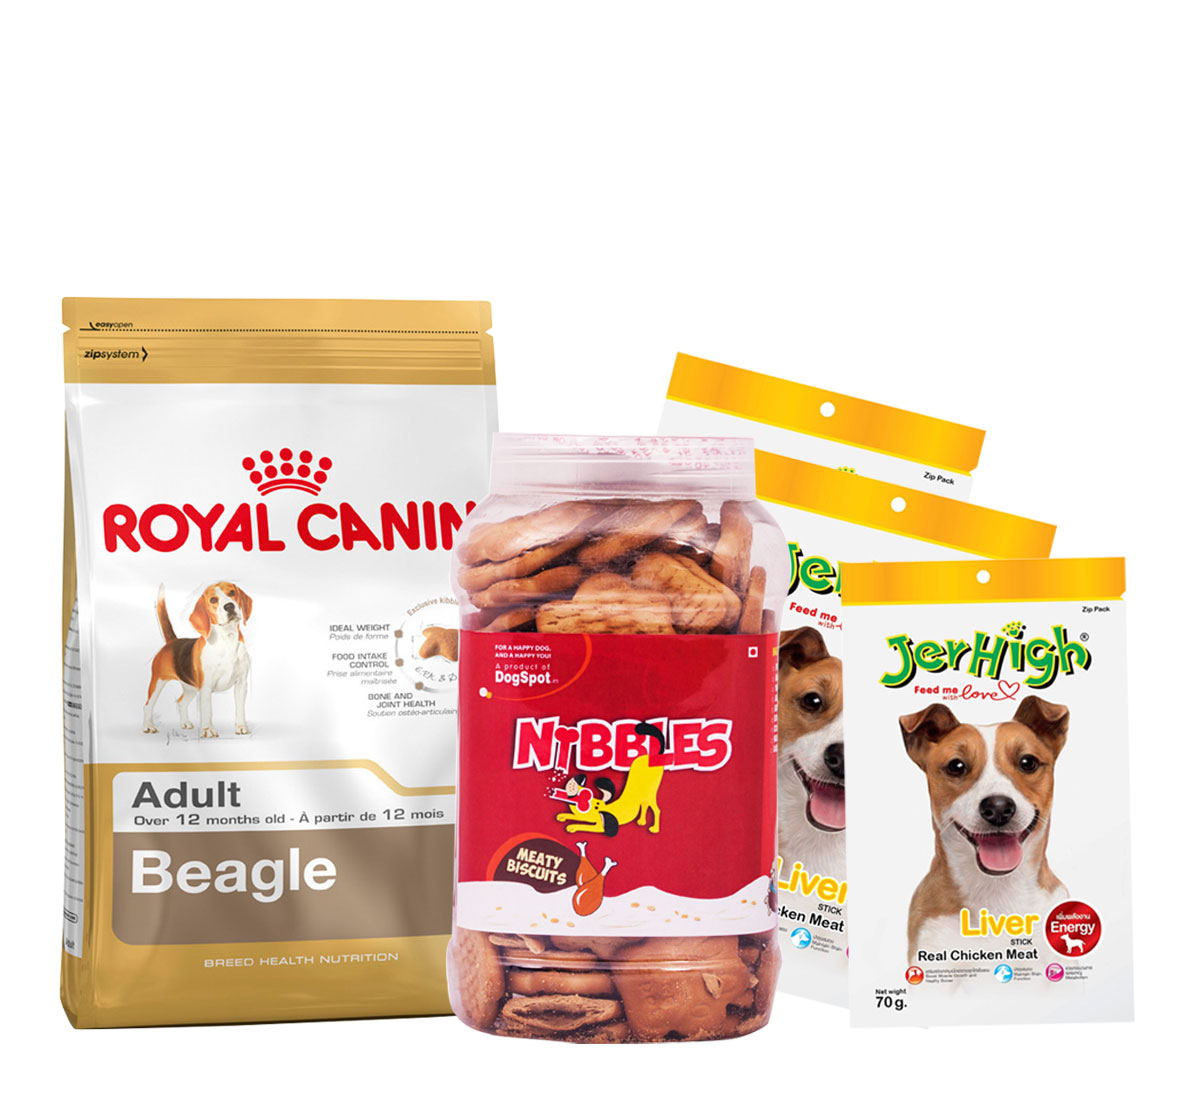 Royal Canin Beagle Adult - 3 Kg With Treats & Biscuit